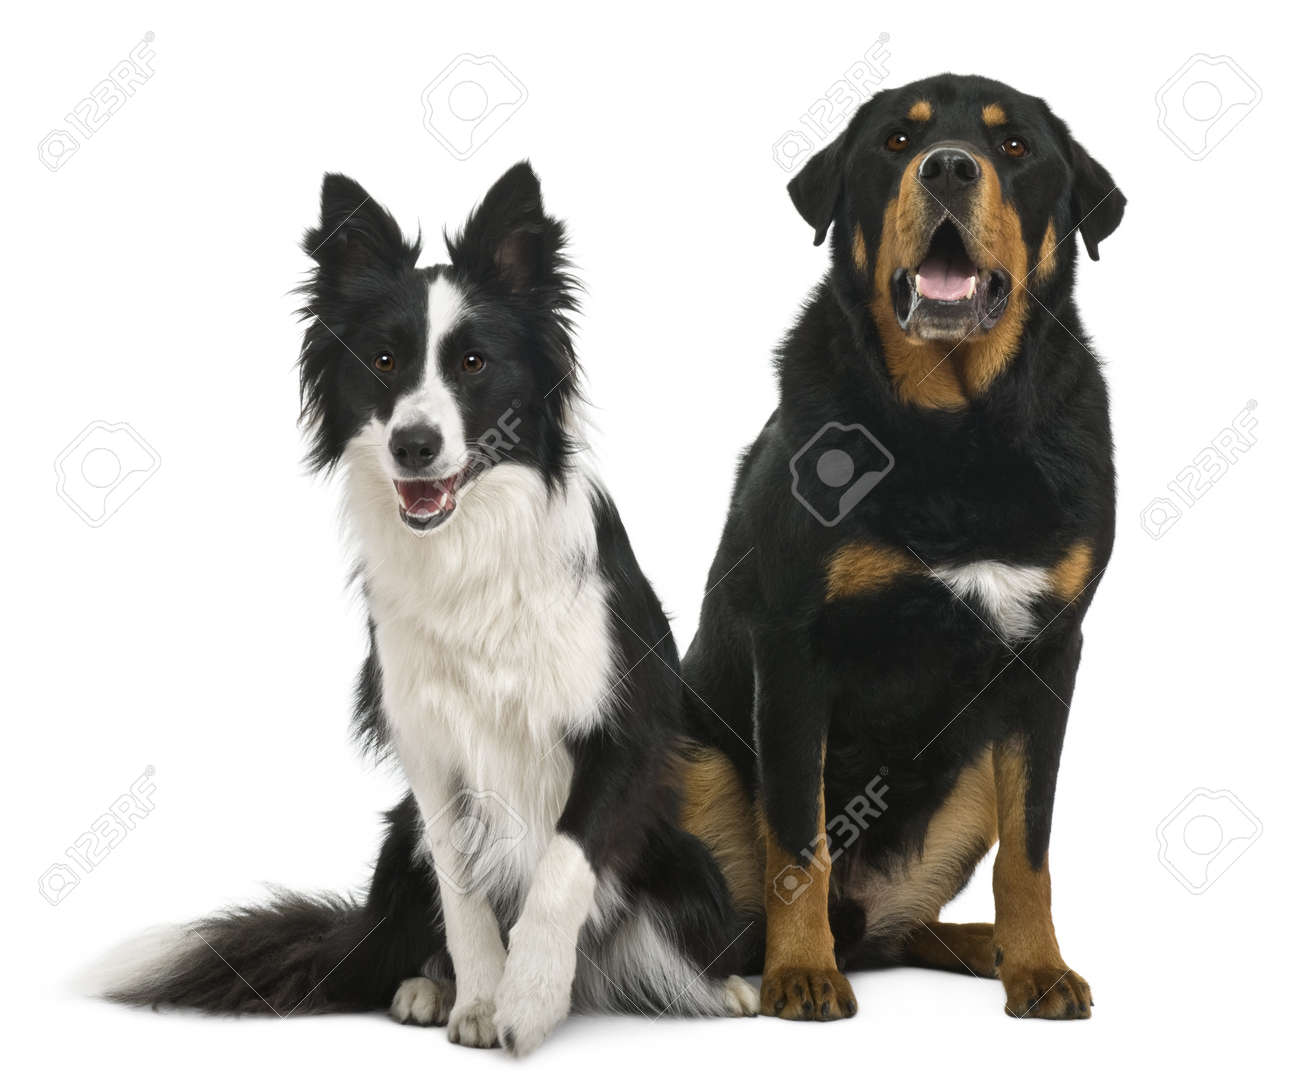 Mixed-breed 5 years old and border collie, 18 months old, in front of white background Stock Photo - 7120683